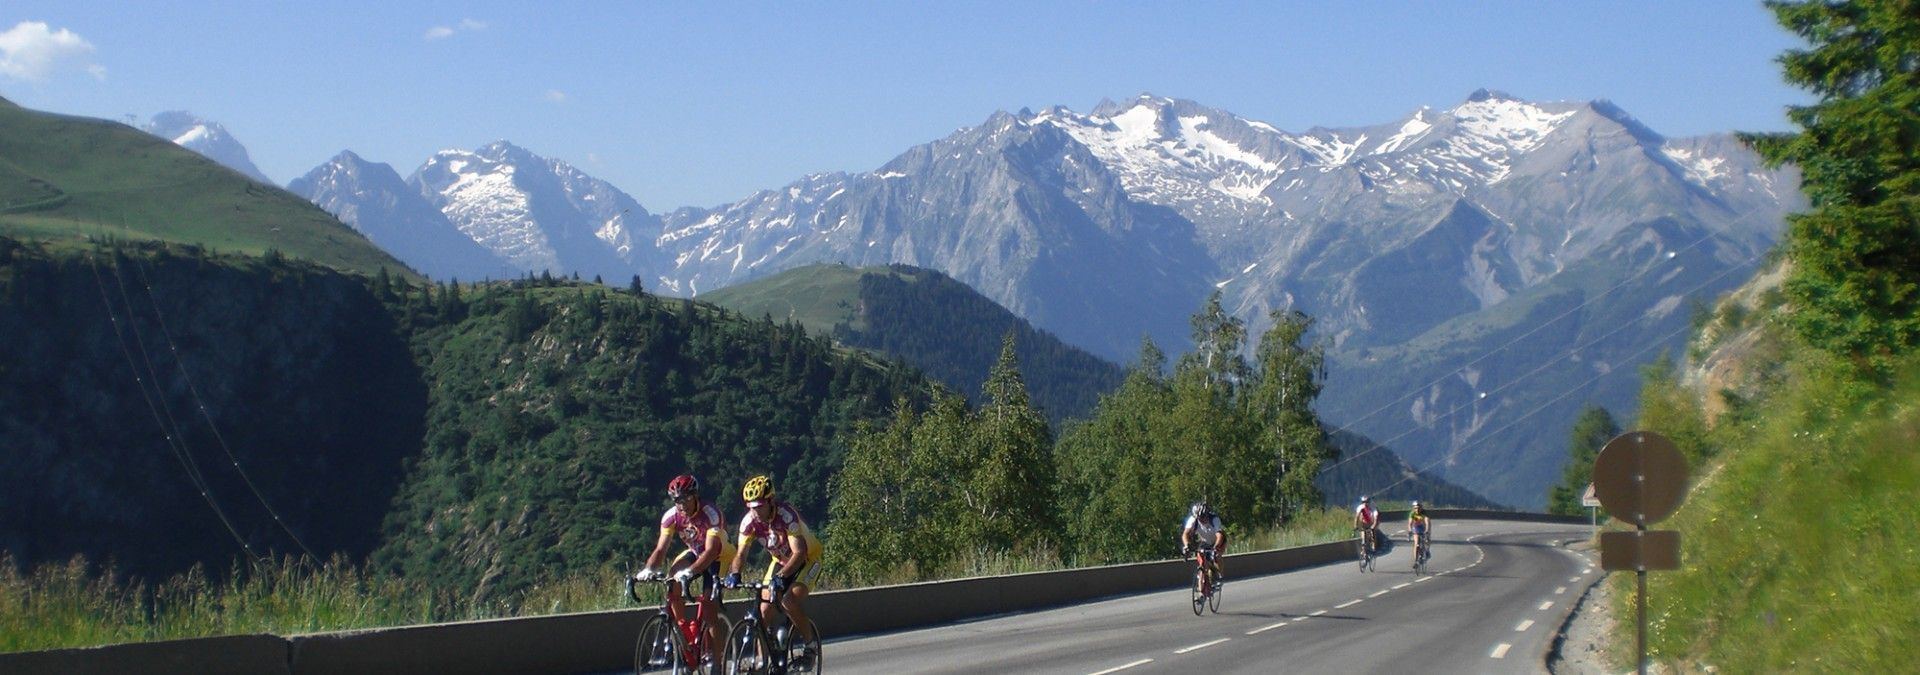 Cycling_through_the_Pyrenees_France.jpg